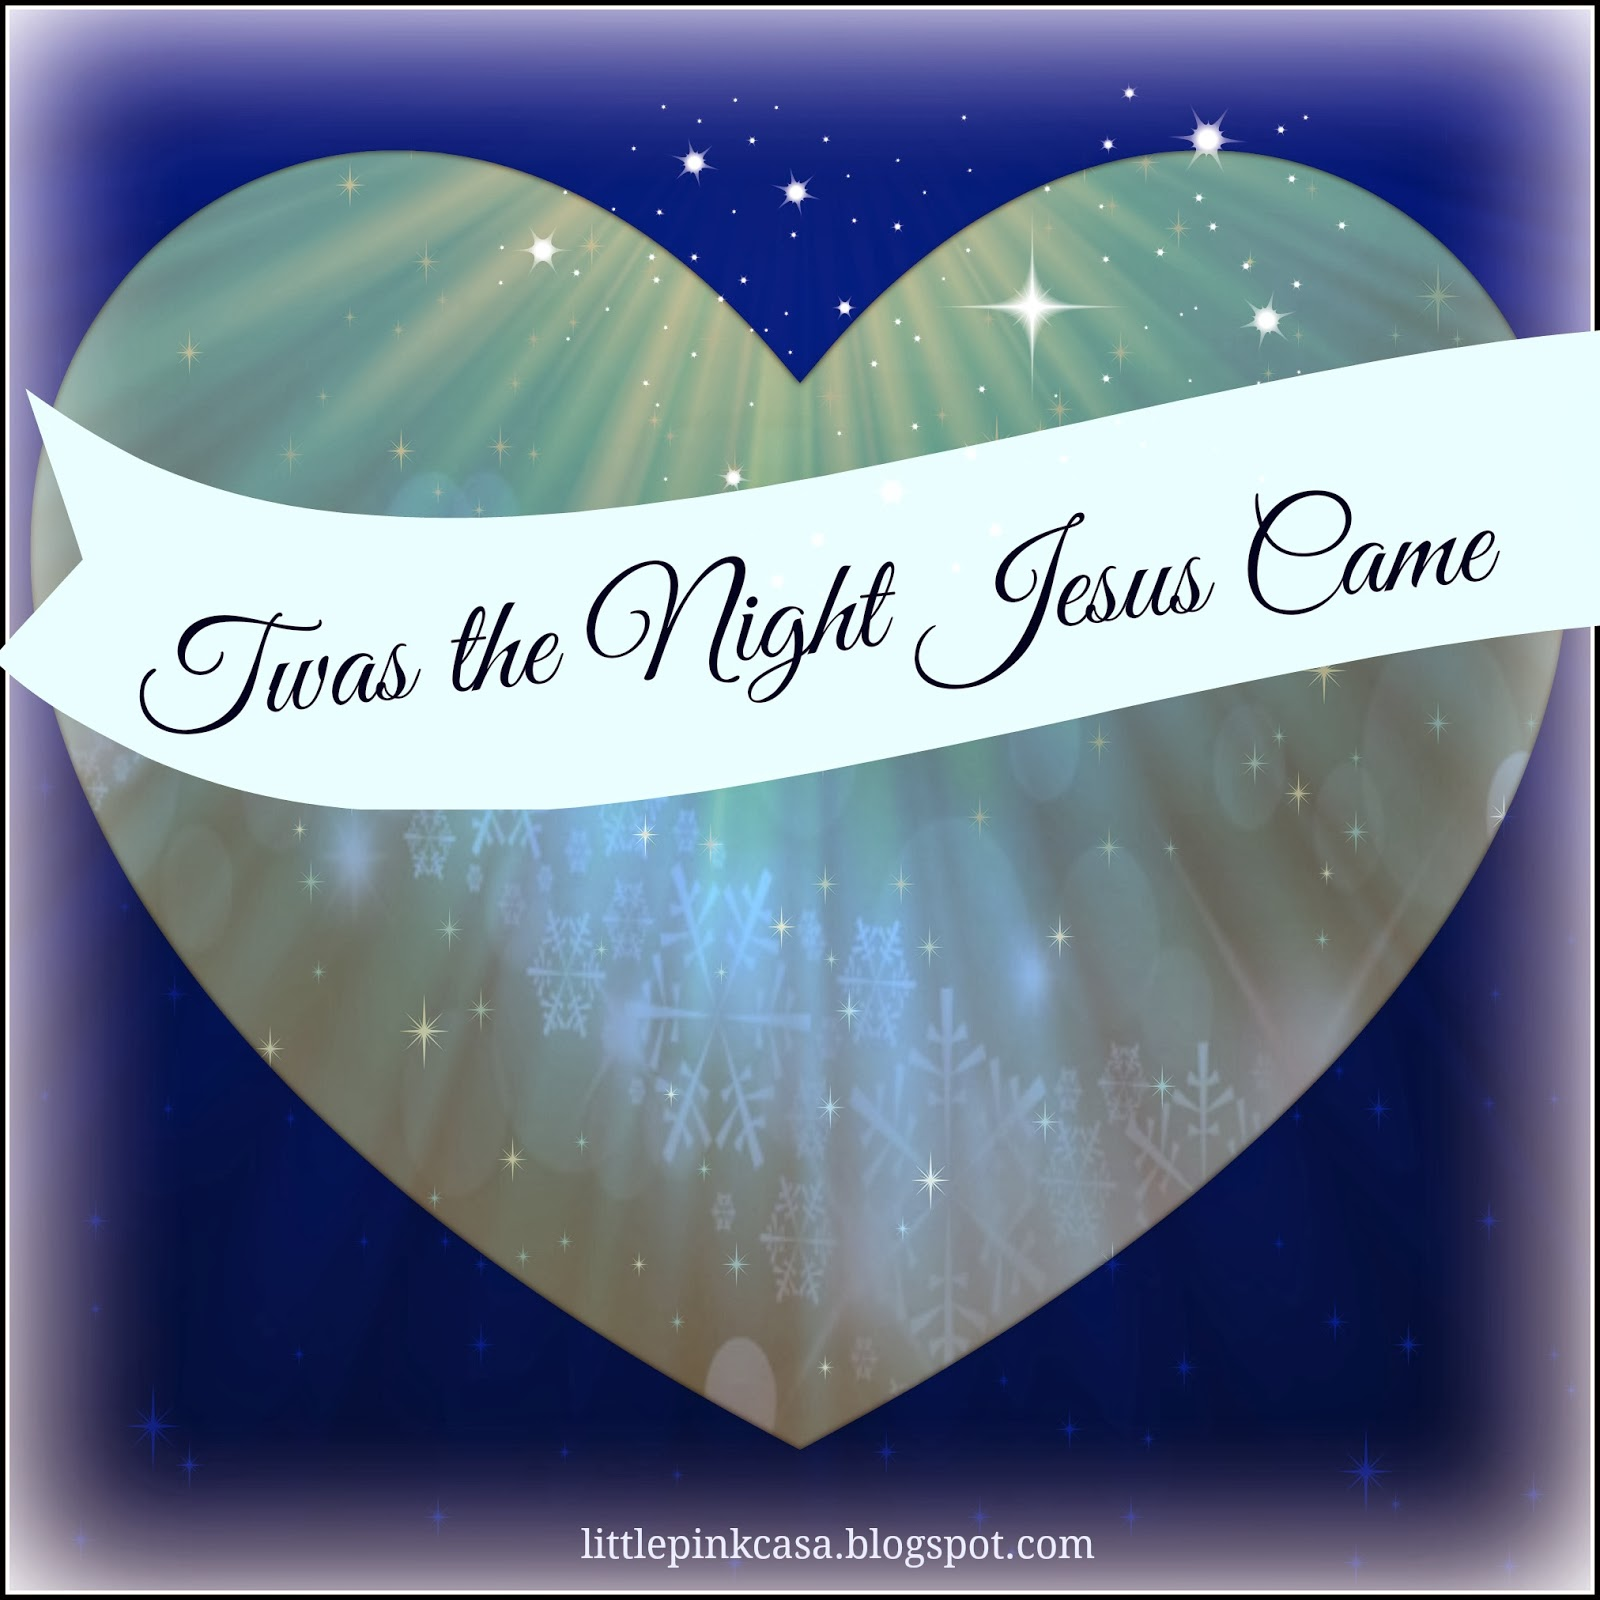 picture relating to Twas the Night Before Jesus Came Printable named Twas the Evening Jesus Arrived Poem Small crimson casa